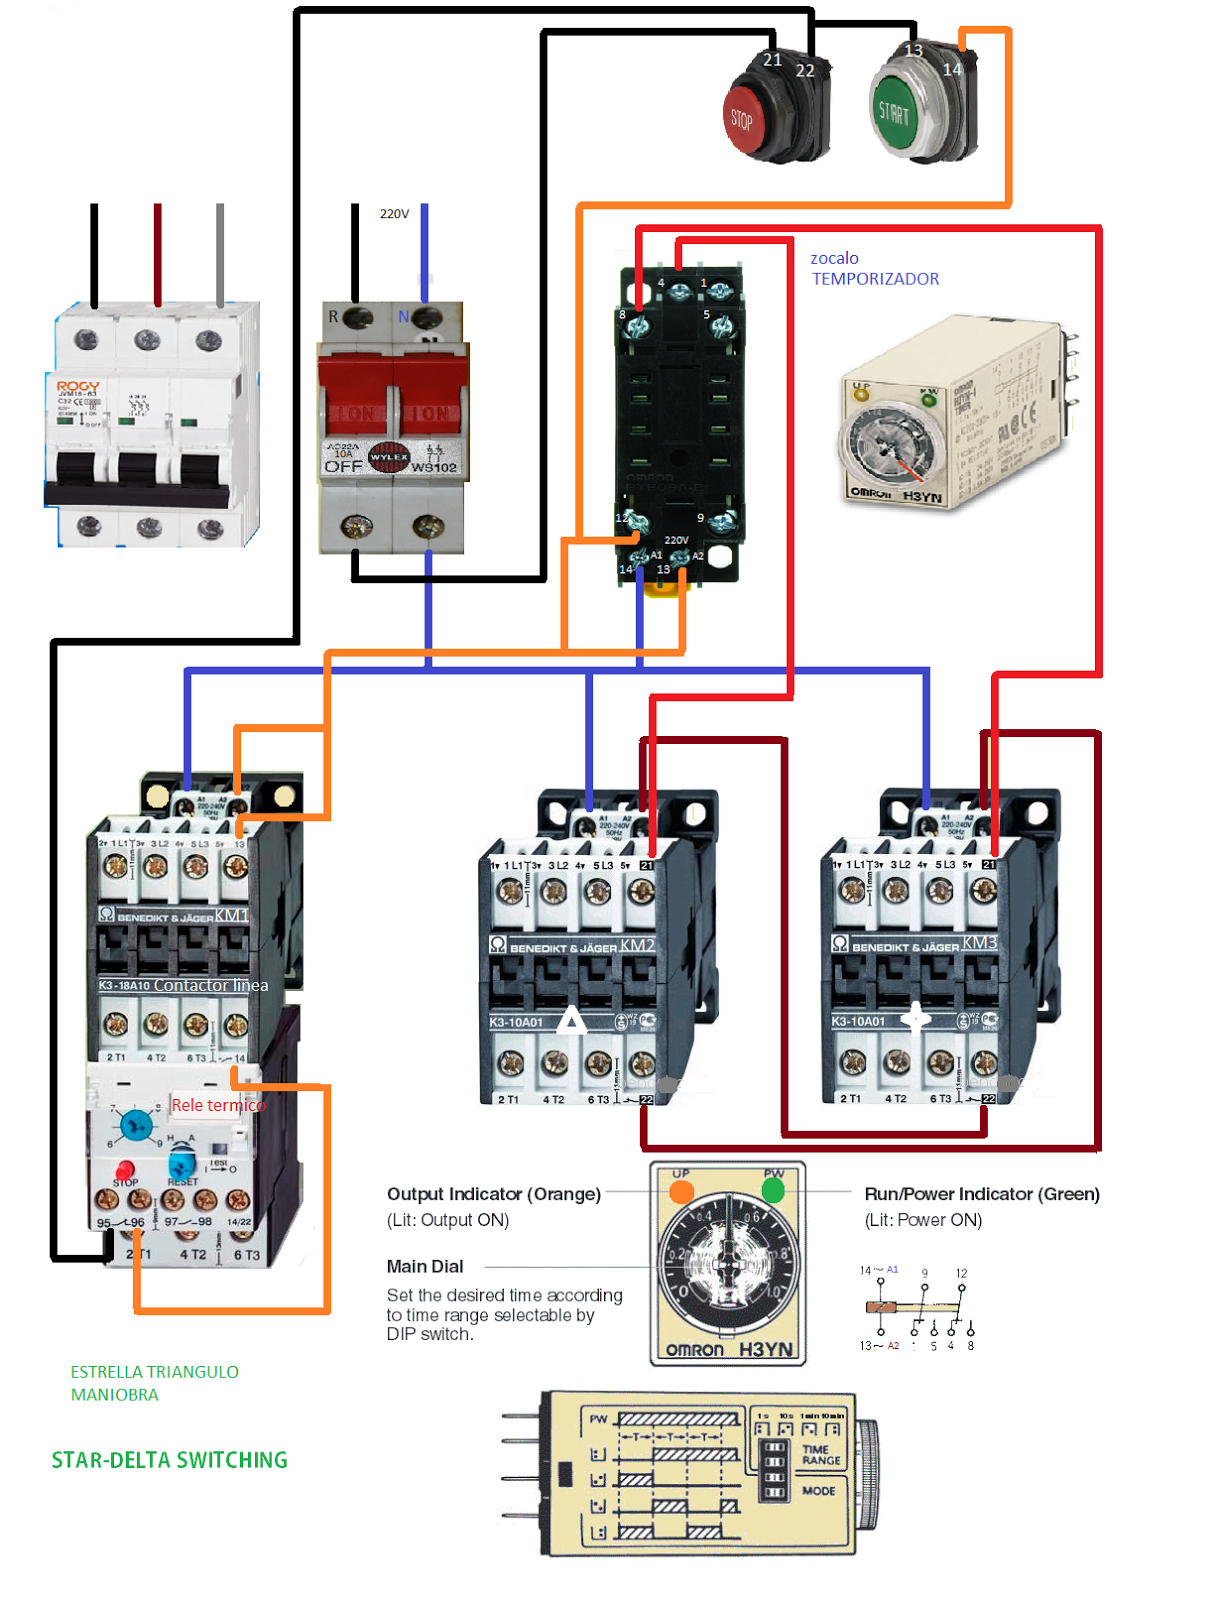 small resolution of star delta switching electrical engineering blog electrical circuit diagram electrical plan electrical engineering